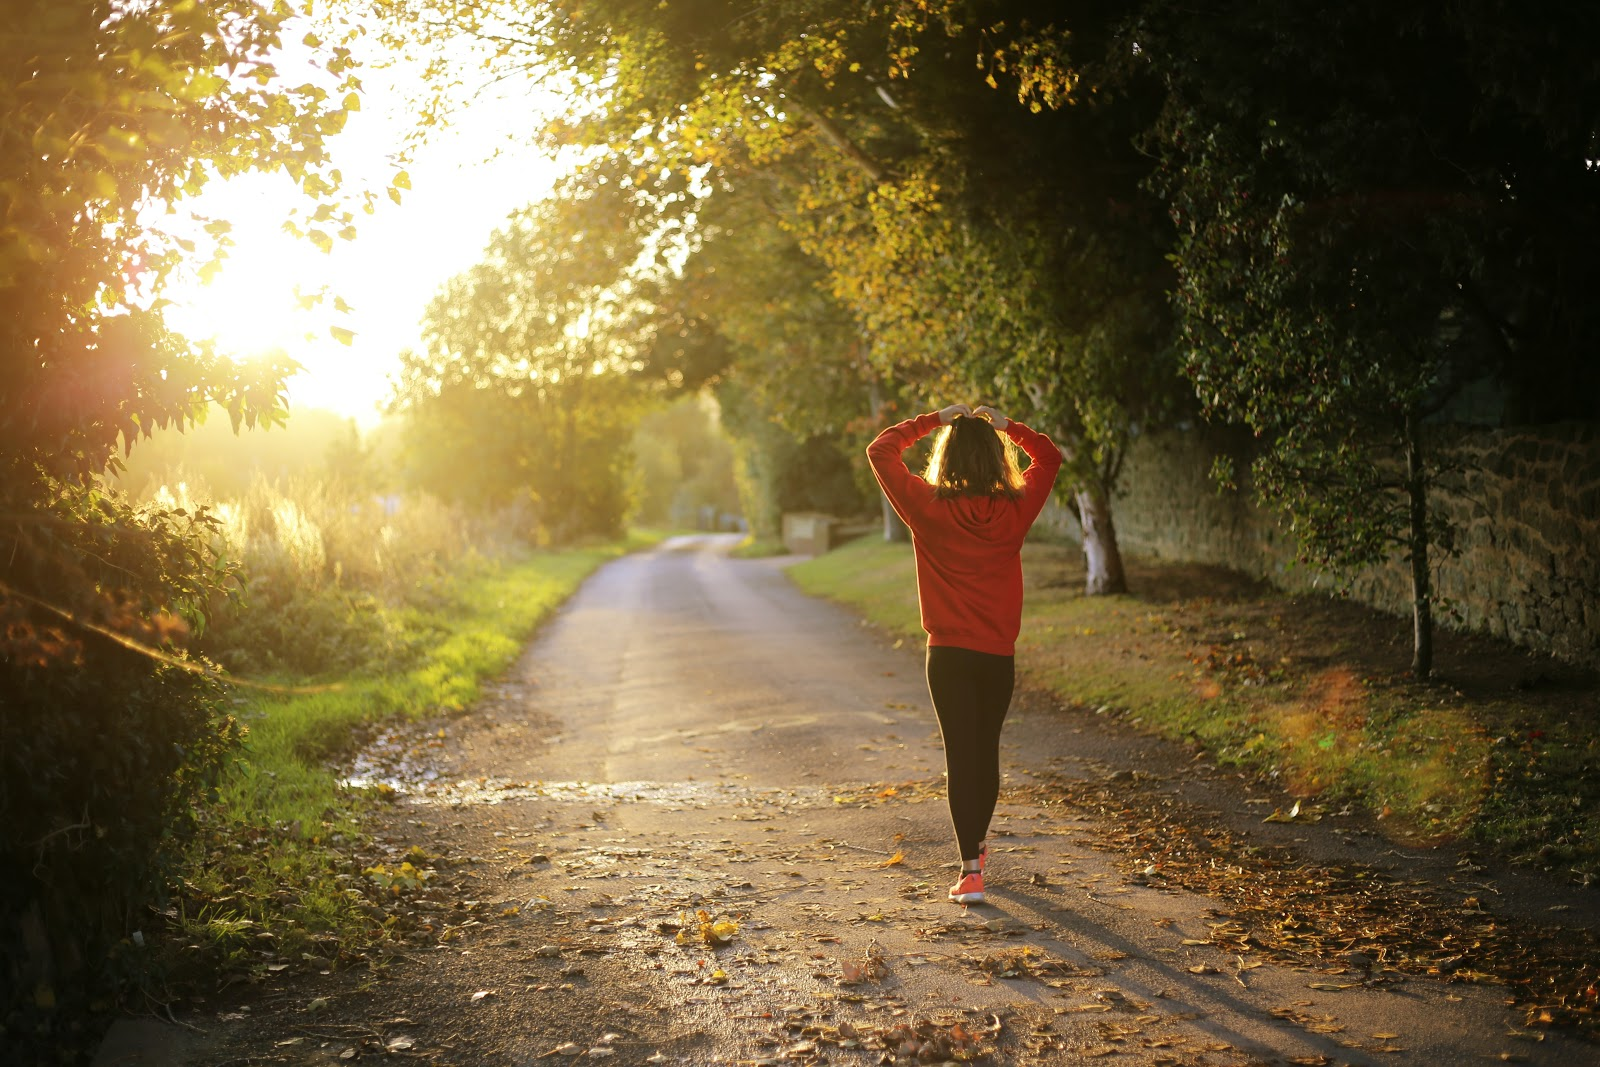 a woman in the park in a red jogging outfit in the sun